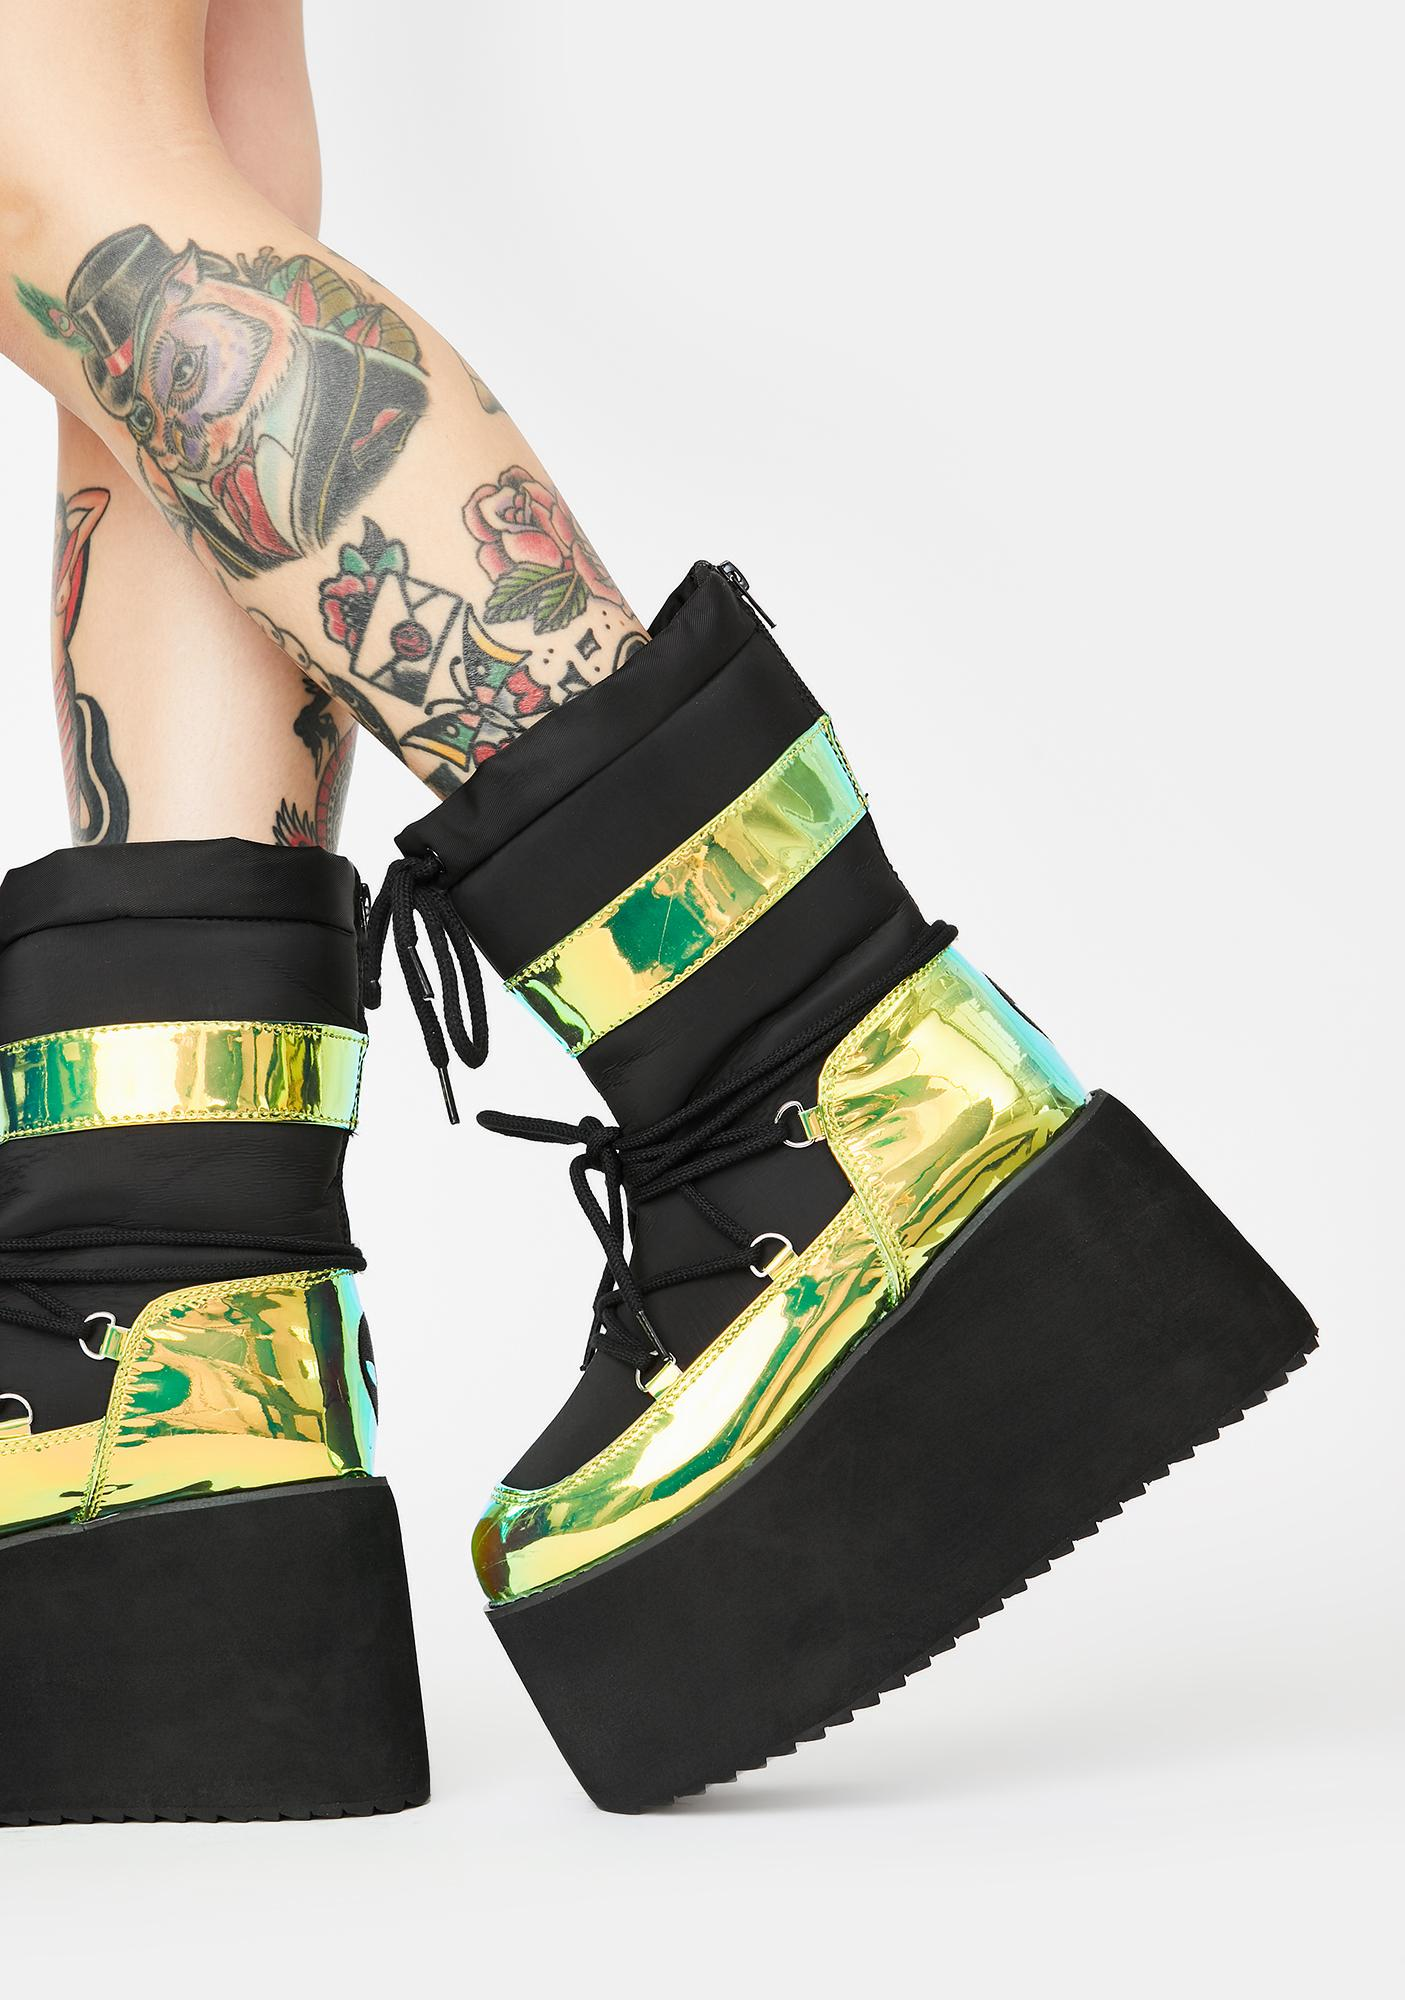 Y.R.U. Green Holographic Qronic Winter Boots